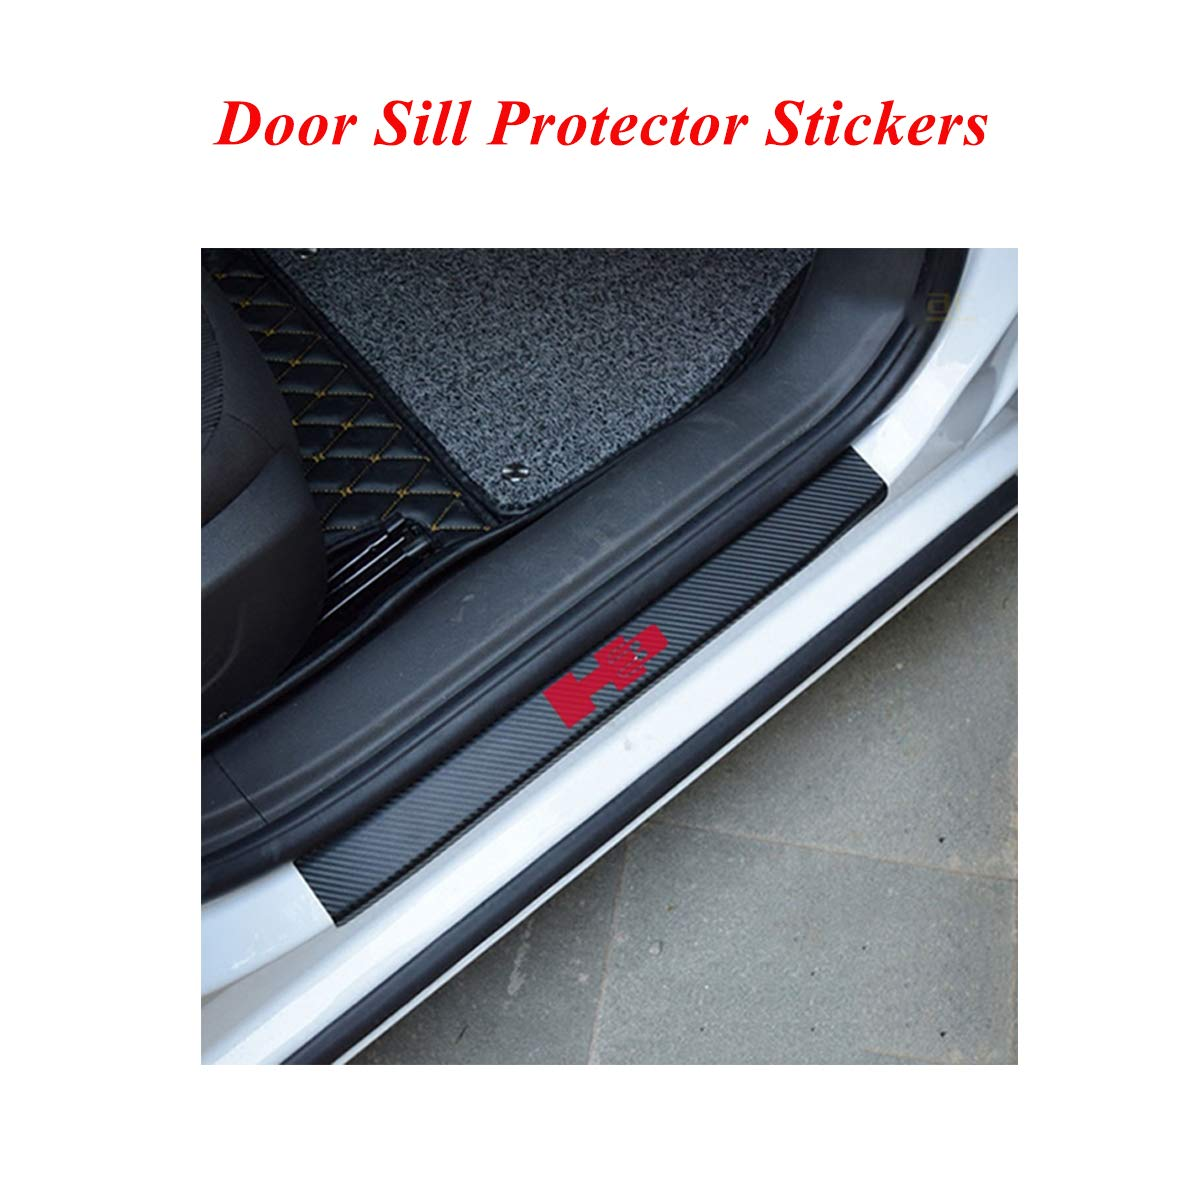 door sill plate protector film for car Car Door Sill Protector Scuff Plate Stickers with H3 logo door sill protector film for Hummer series White Universal Door sill entry guard protector stickers